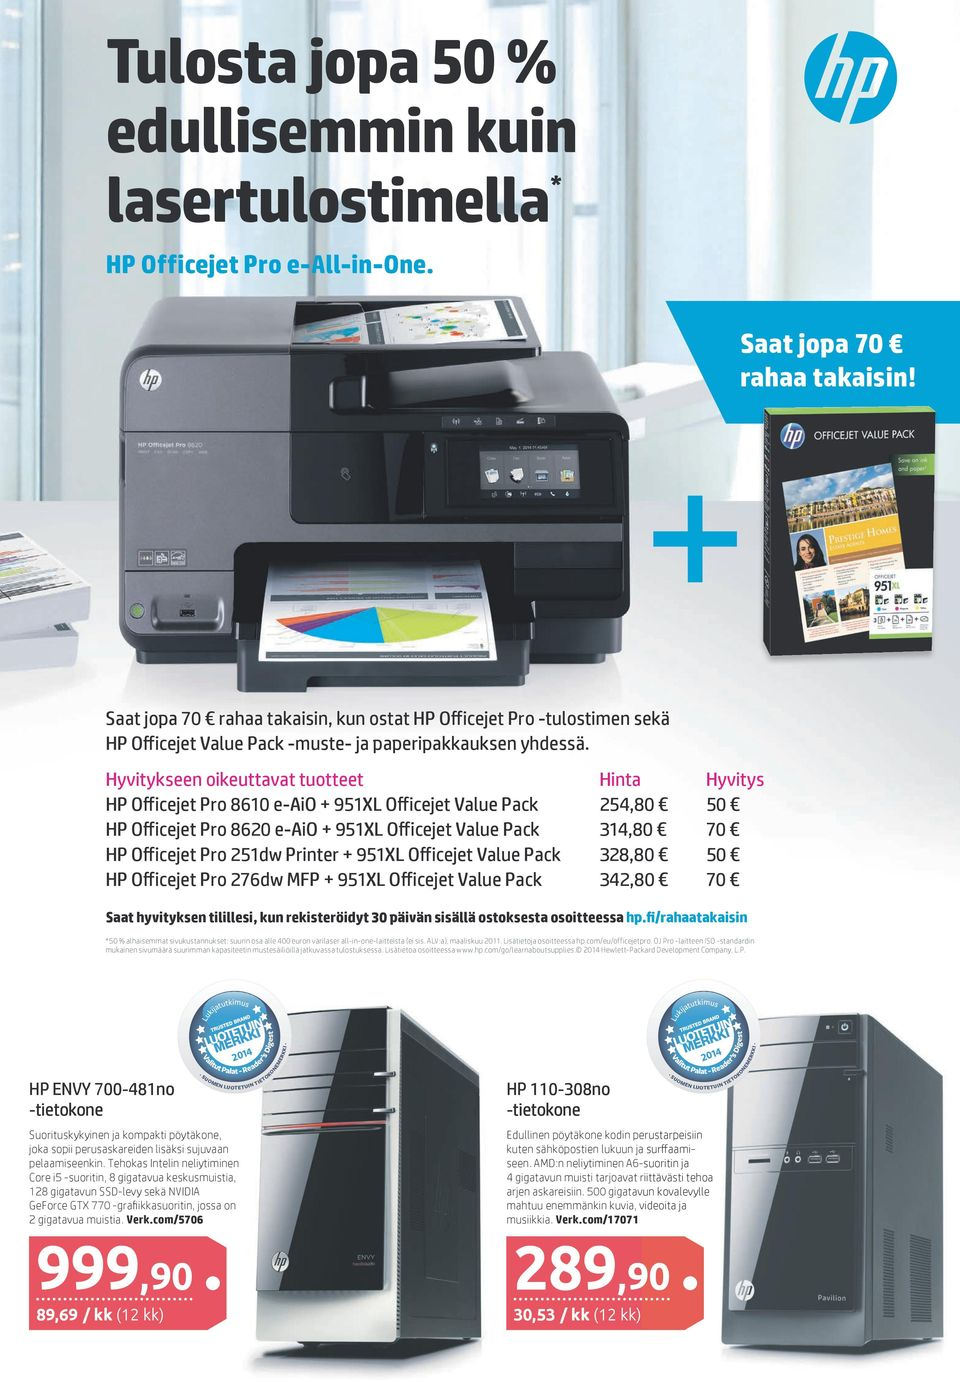 Hyvitykseen oikeuttavat tuotteet Hinta Hyvitys HP Officejet Pro 8610 e-aio + 951XL Officejet Value Pack 254,80 50 HP Officejet Pro 8620 e-aio + 951XL Officejet Value Pack 314,80 70 HP Officejet Pro